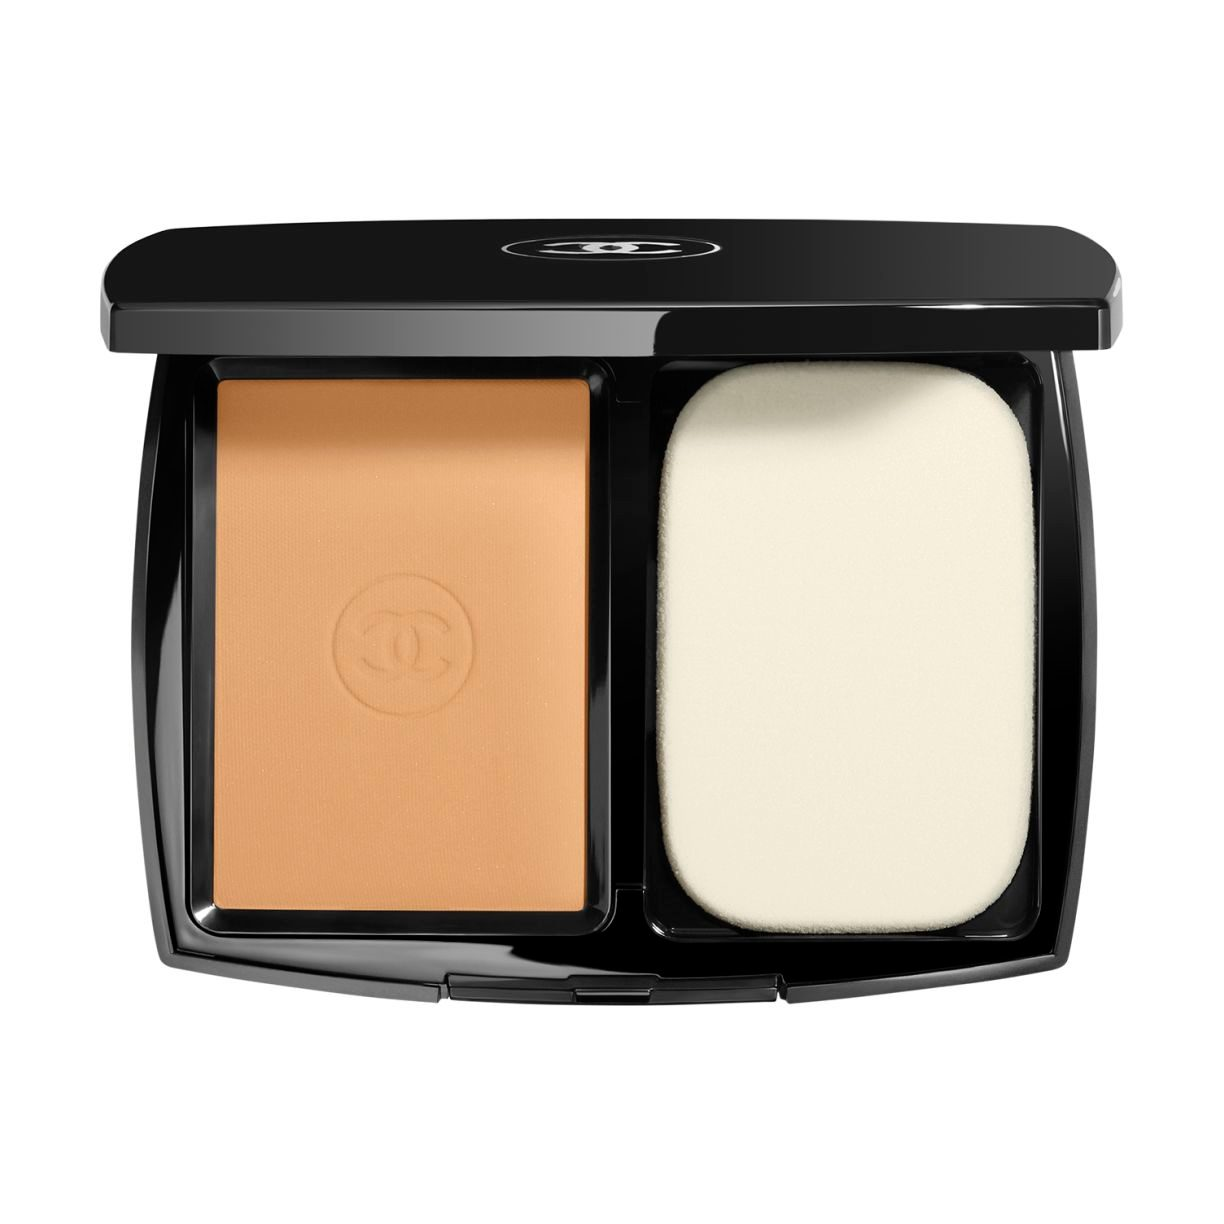 LE TEINT ULTRA TENUE TEINT COMPACT HAUTE PERFECTION 91 - CARAMEL